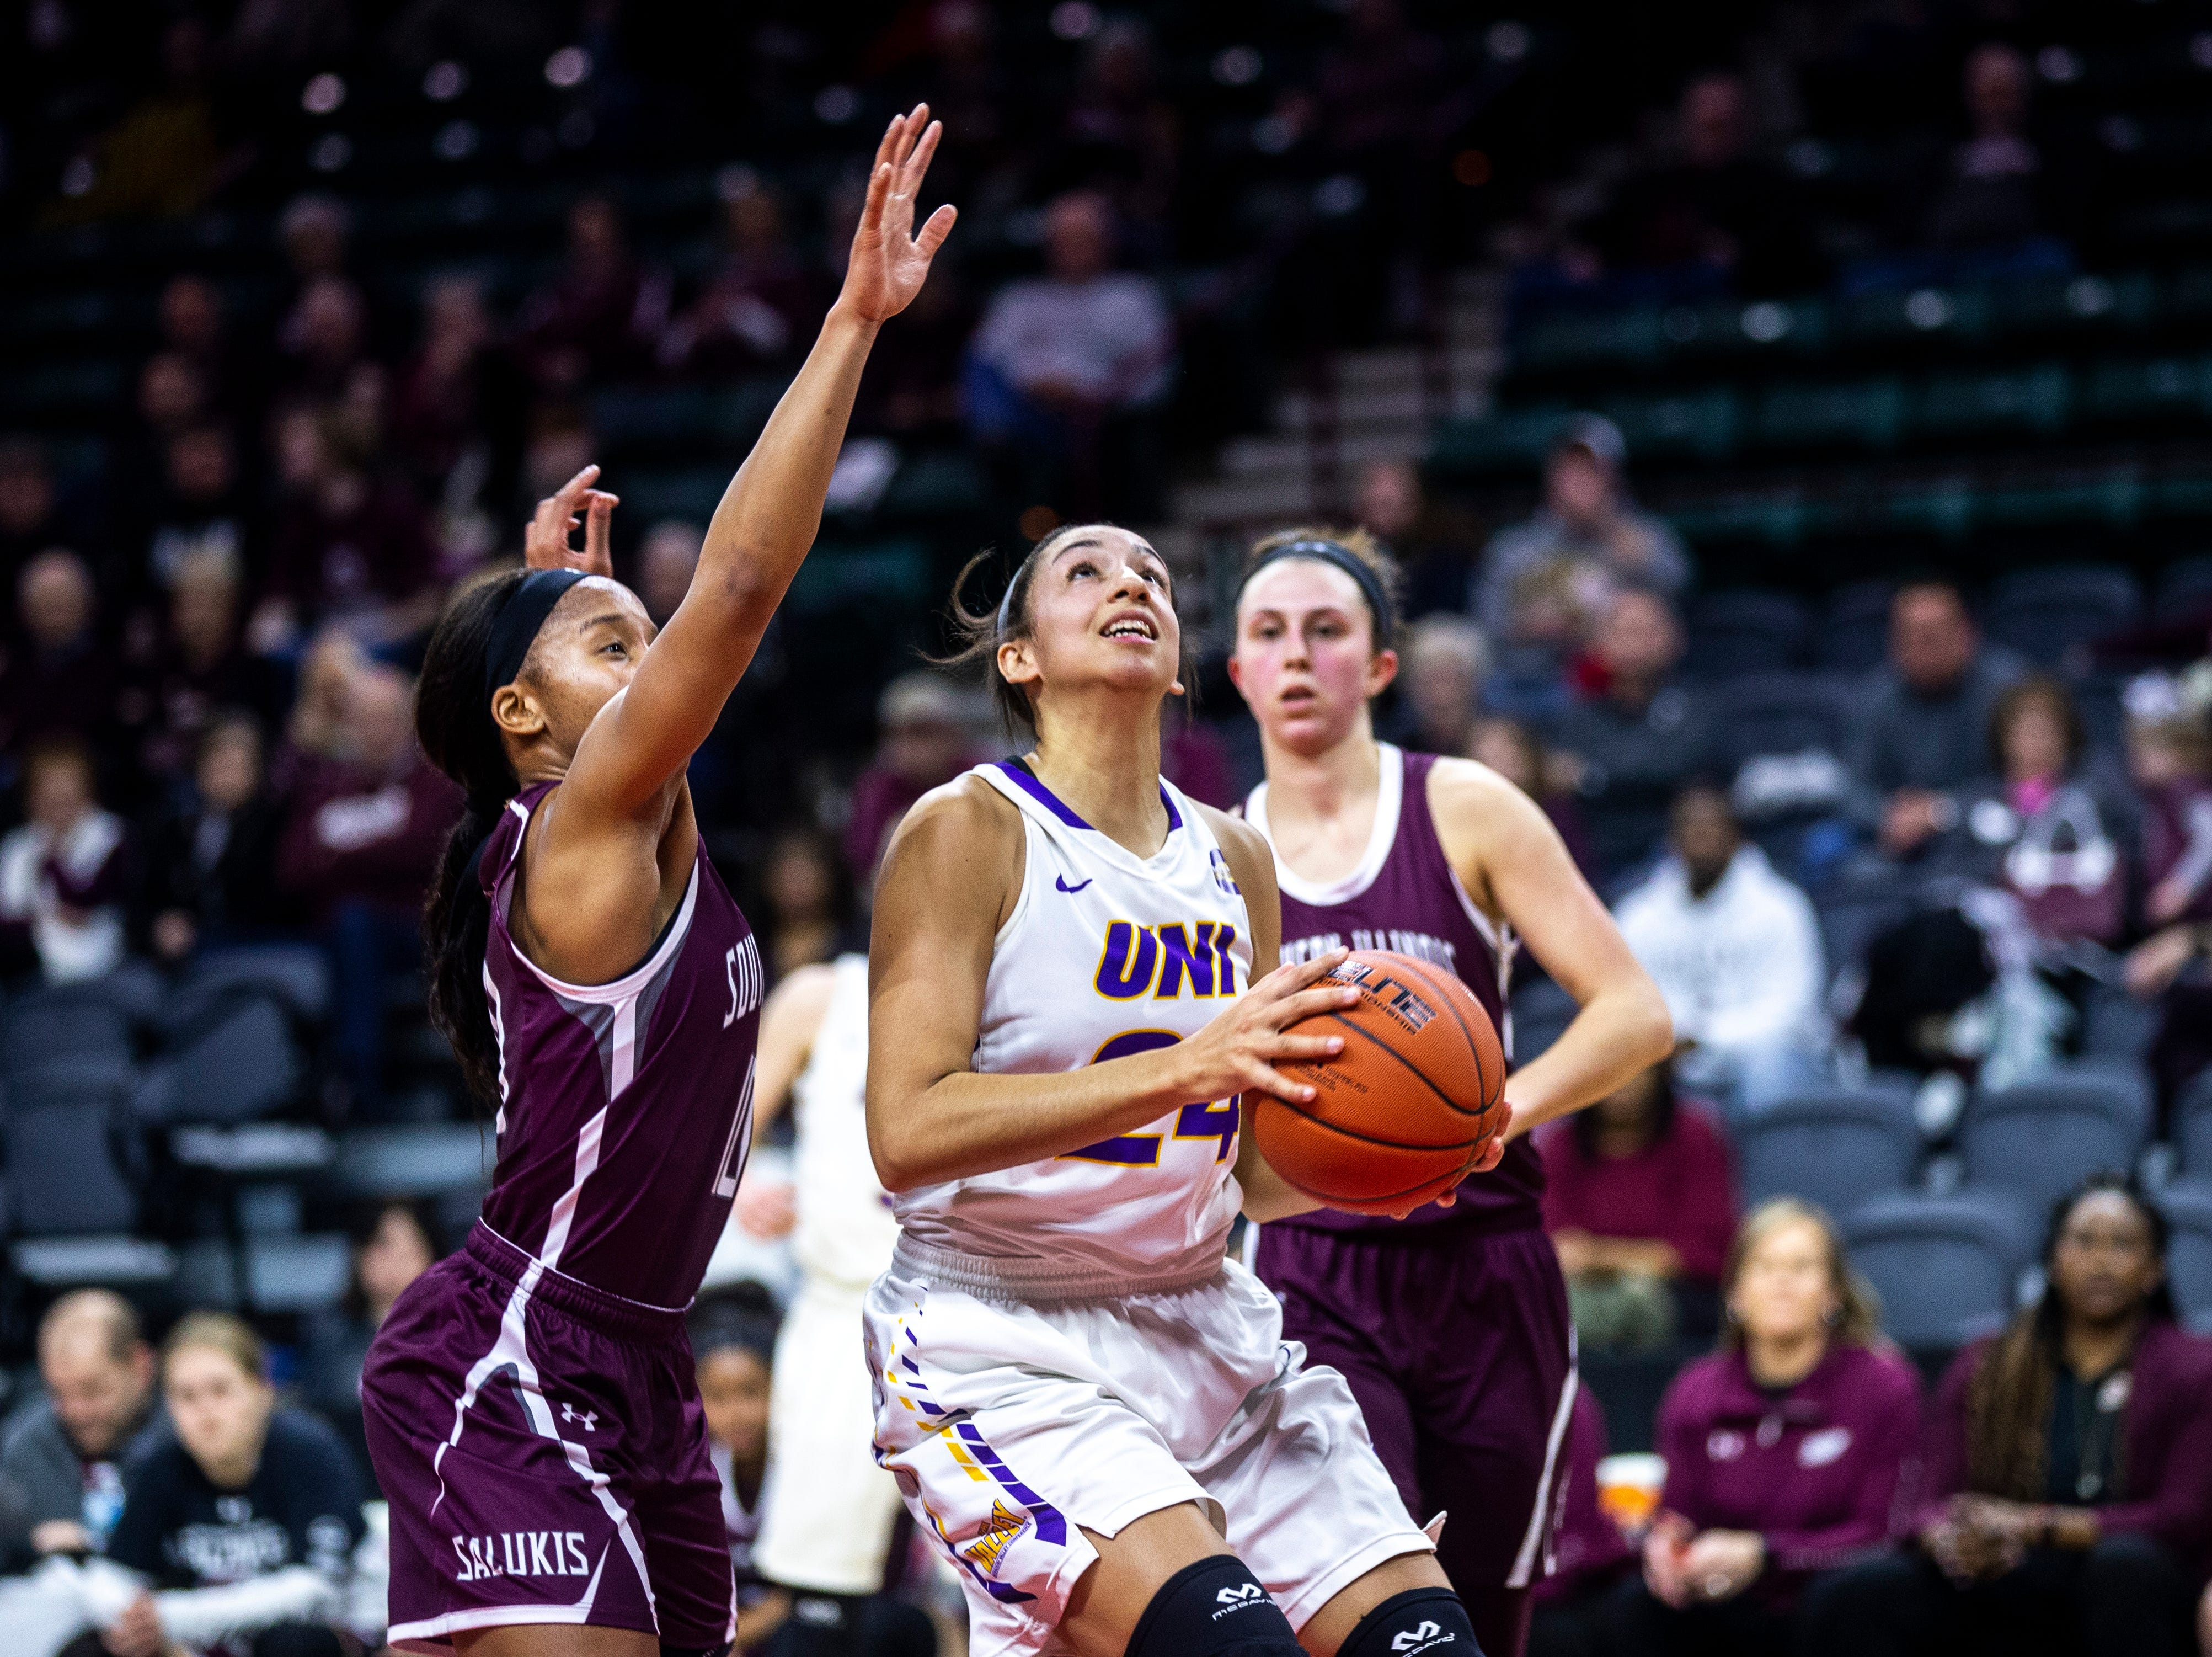 Northern Iowa guard Mikaela Morgan (24) drives to the basket against Southern Illinois during a NCAA Missouri Valley Conference women's basketball quarterfinal tournament game, Friday, March 15, 2019, at the TaxSlayer Center in Moline, Illinois.